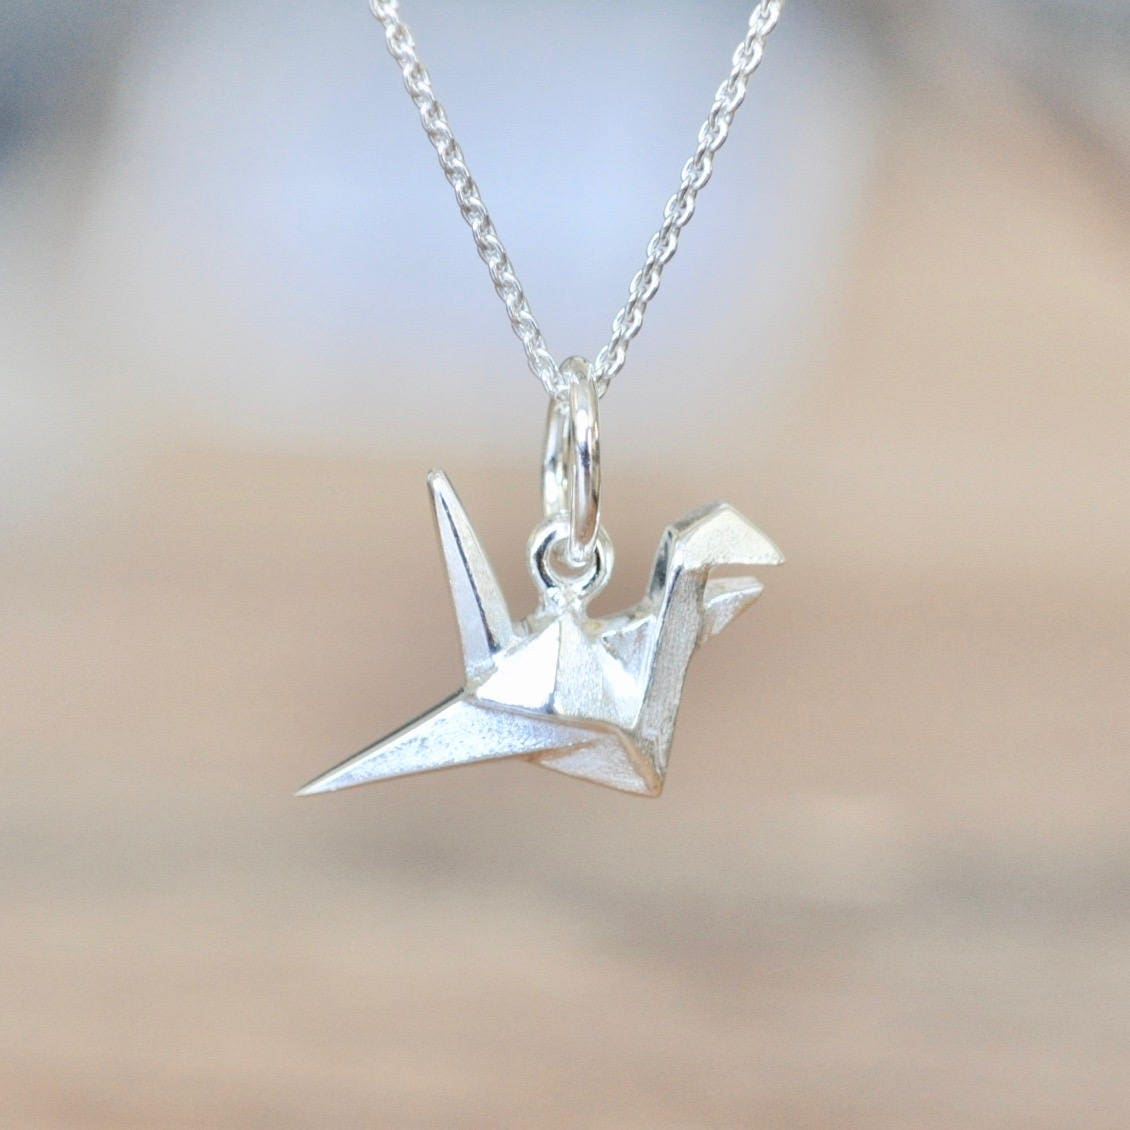 Sterling Silver Origami Crane Necklace Silver Crane Necklace - photo#30